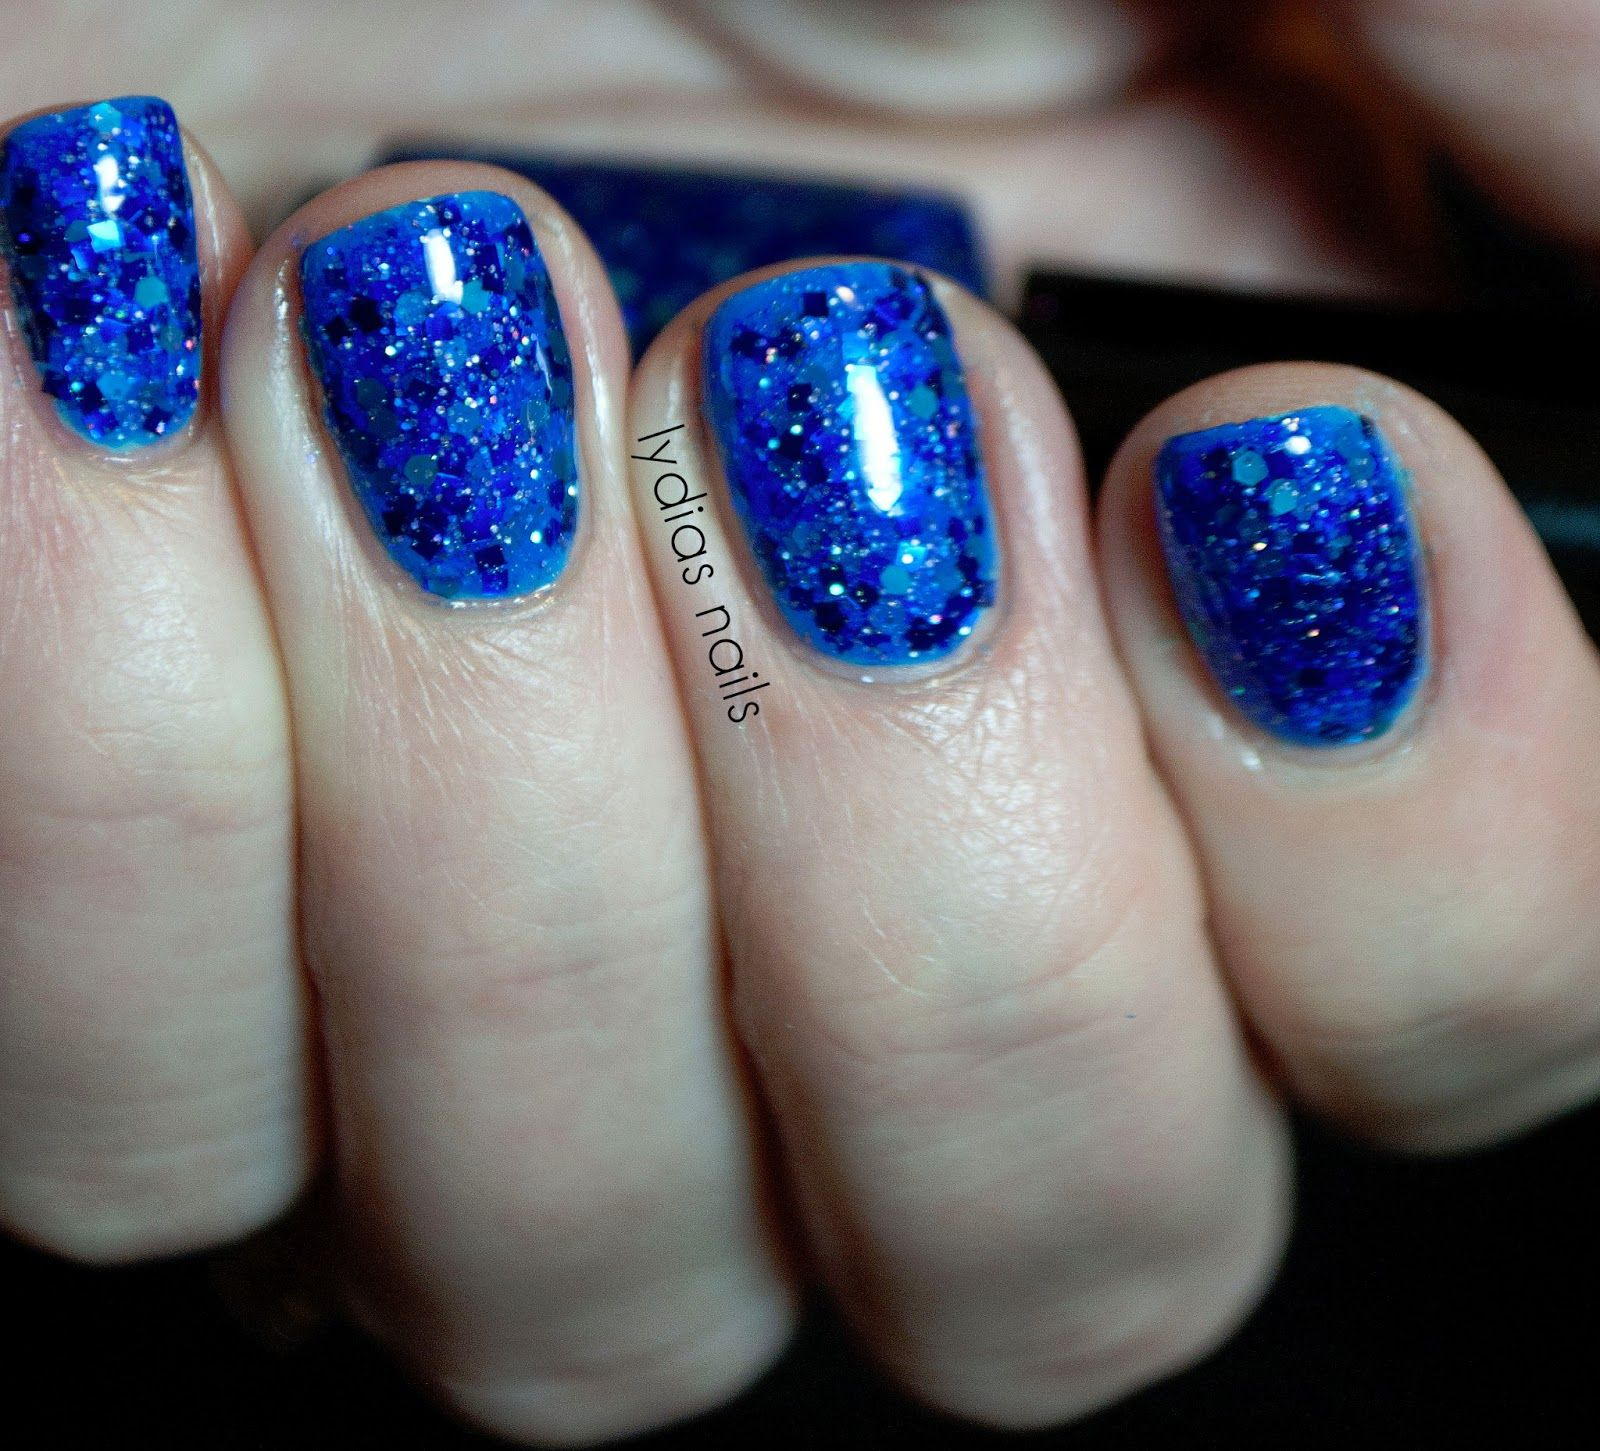 Black Sheep Lacquer- Blue in the Face (2 coats) over Wet 'n' Wild - I Need a Refresh-Mint